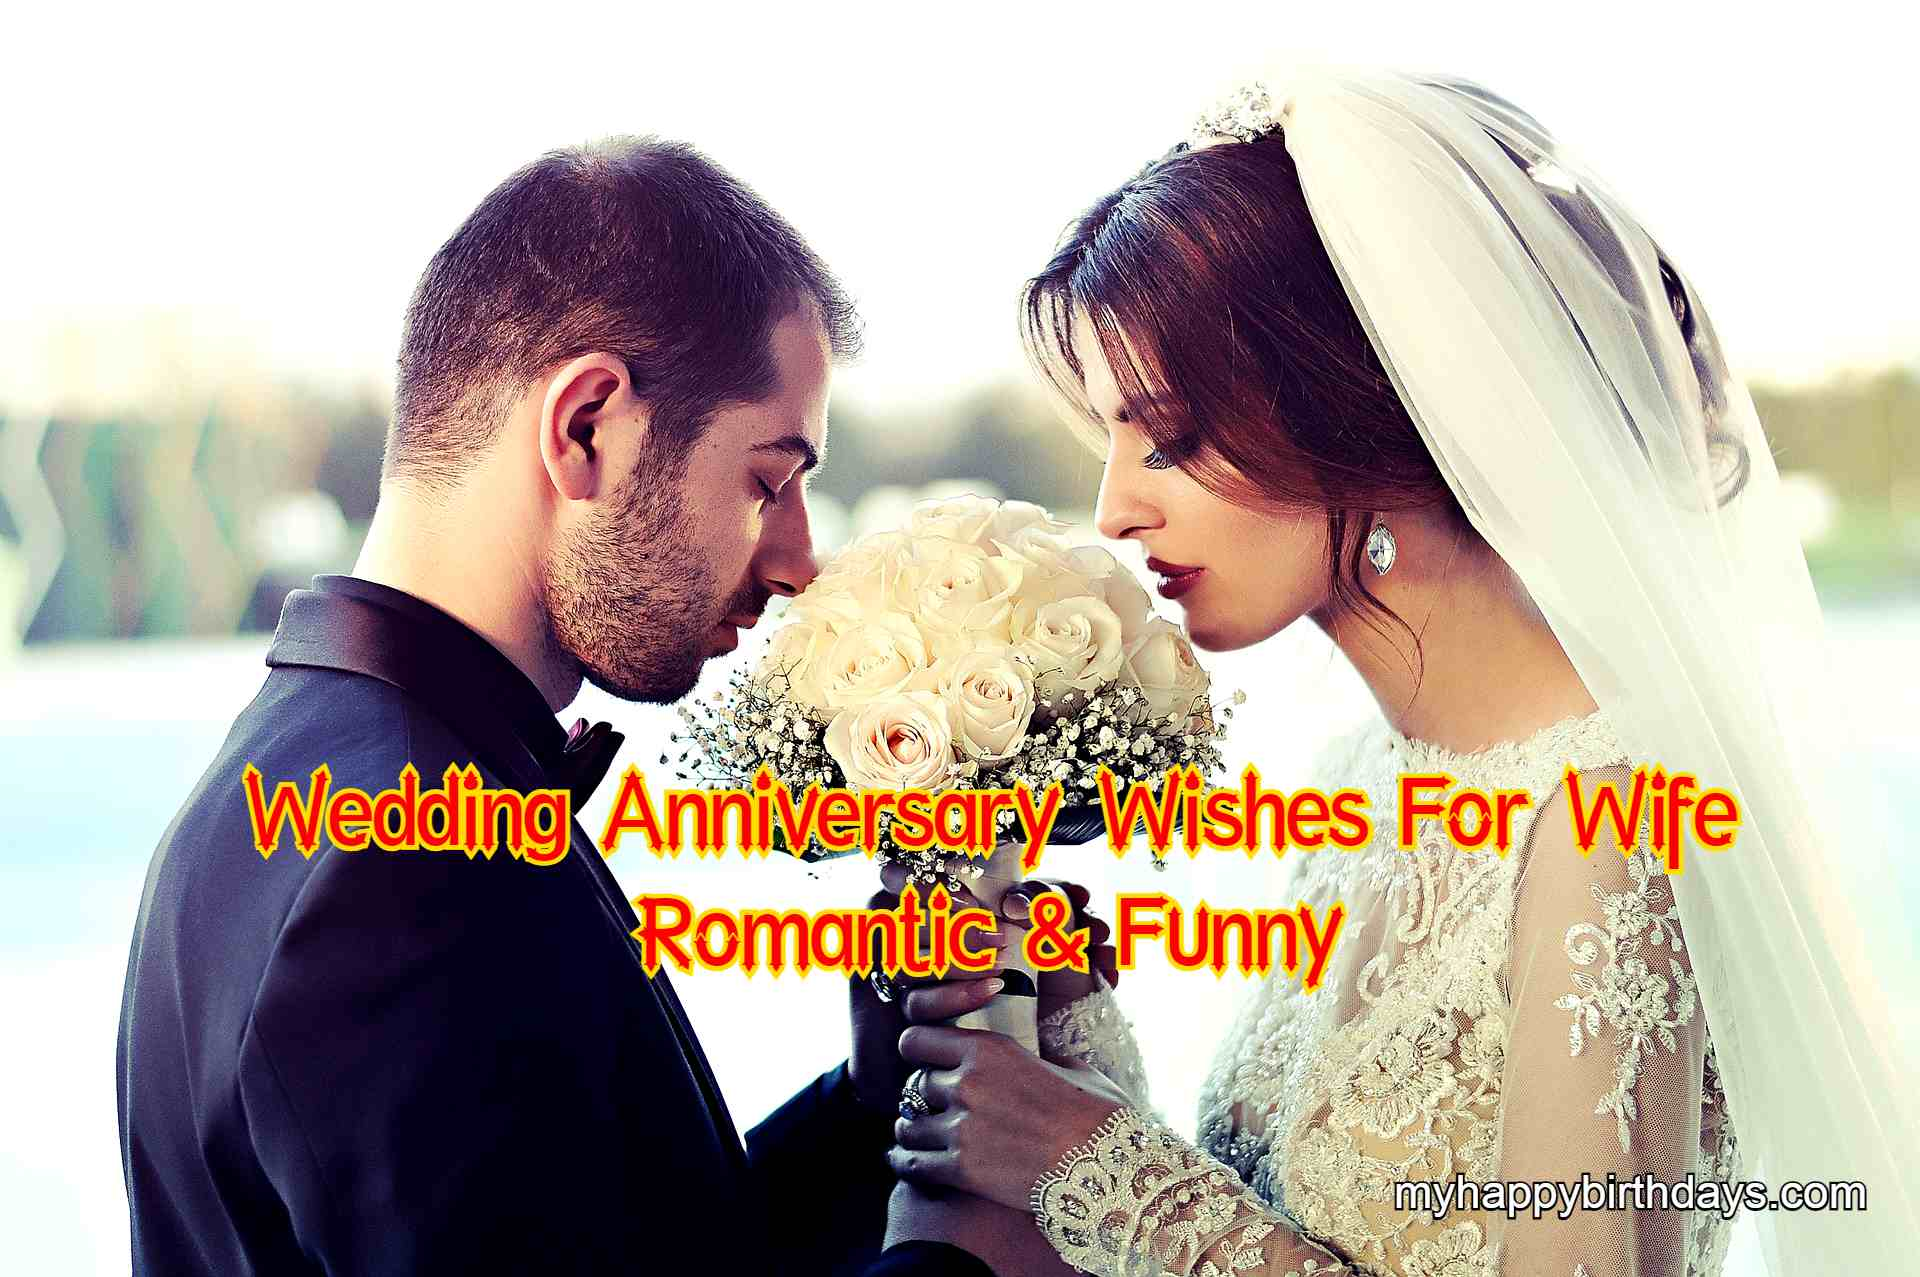 Best Wedding Anniversary Wishes For Wife | Romantic Anniversary Messages For Wife